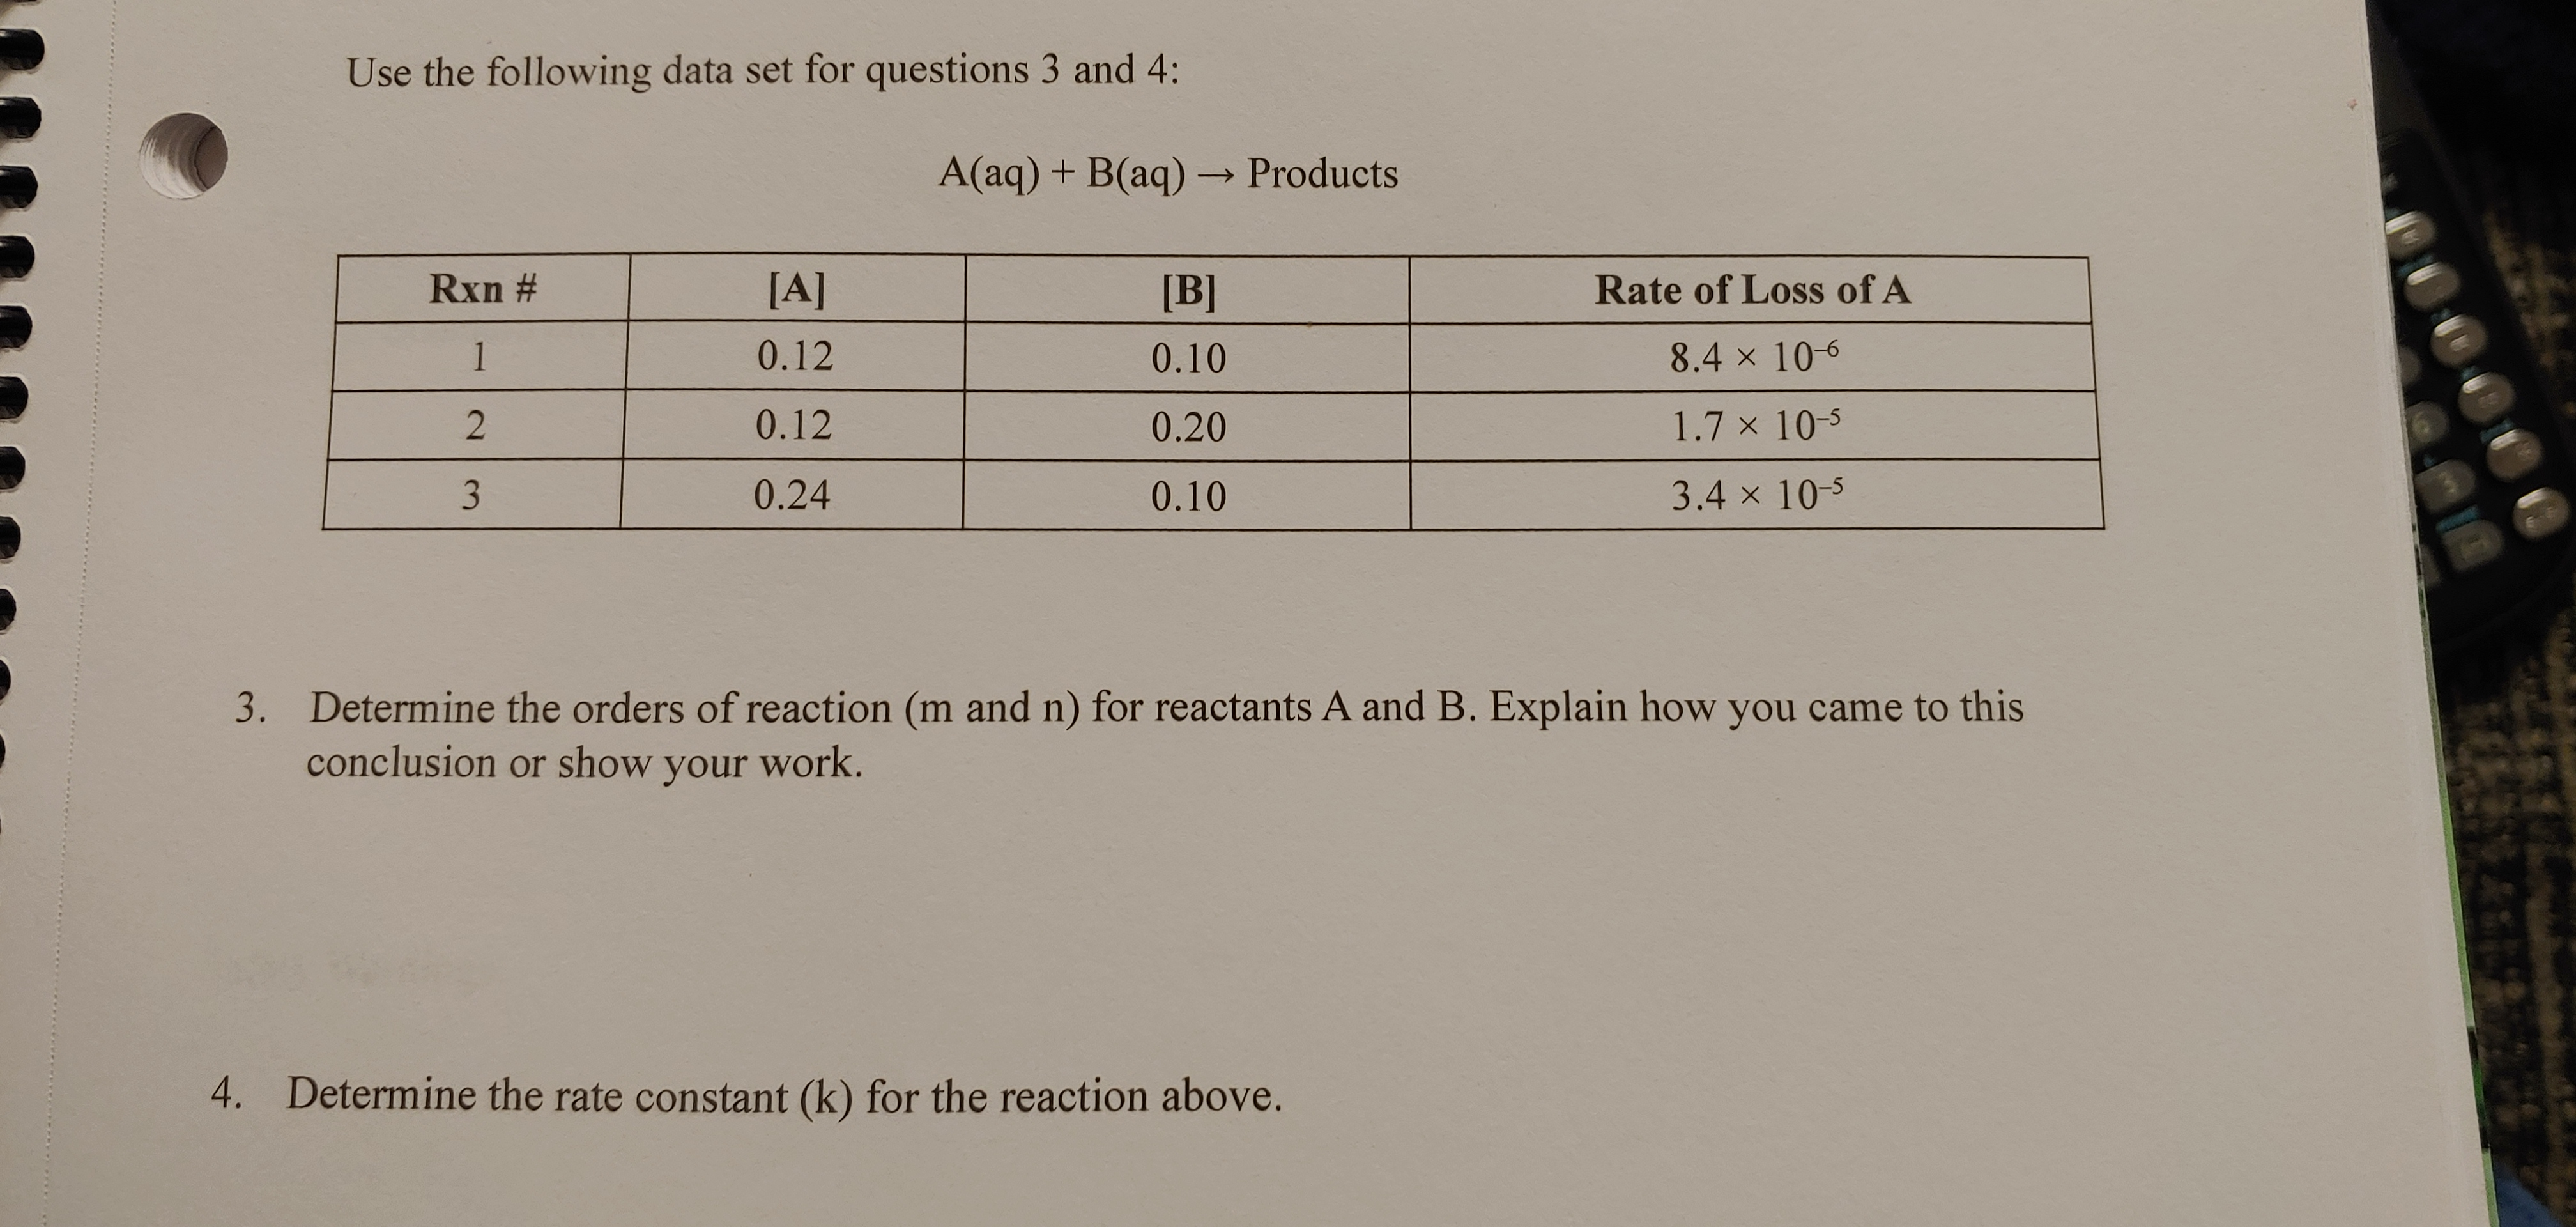 Use the following data set for questions 3 and 4: A(aq) + B(aq) → Products Rxn # [A] [B] Rate of Loss of A 1 0.12 0.10 8.4 x 10-6 0.12 0.20 1.7 x 10-5 0.24 0.10 3.4 x 10-5 3. Determine the orders of reaction (m and n) for reactants A and B. Explain how you came to this conclusion or show your work. 4. Determine the rate constant (k) for the reaction above.